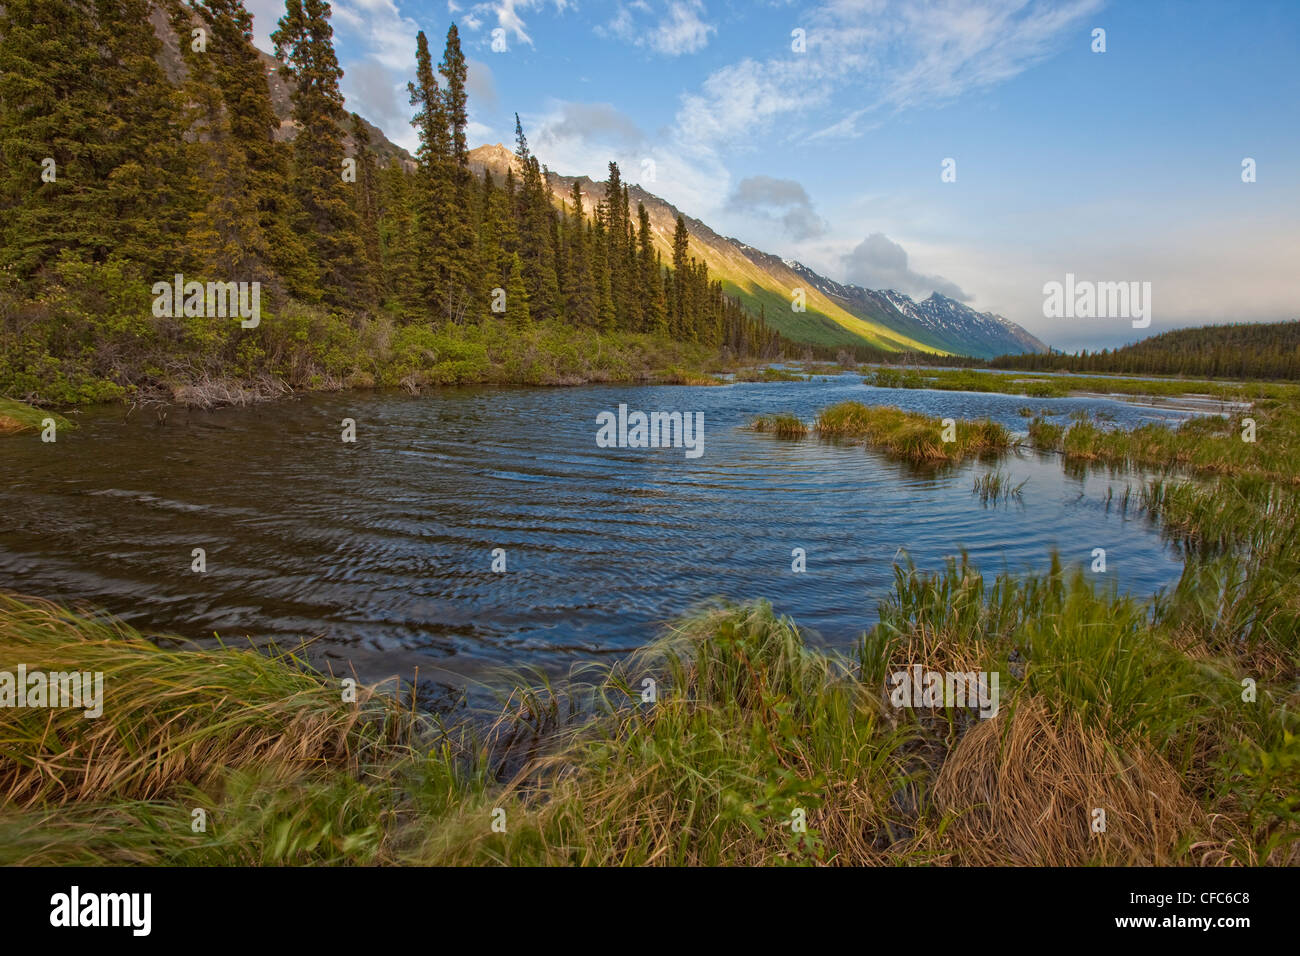 Annie Lake near Whitehorse, Yukon during a windy day in summer, Canada. - Stock Image